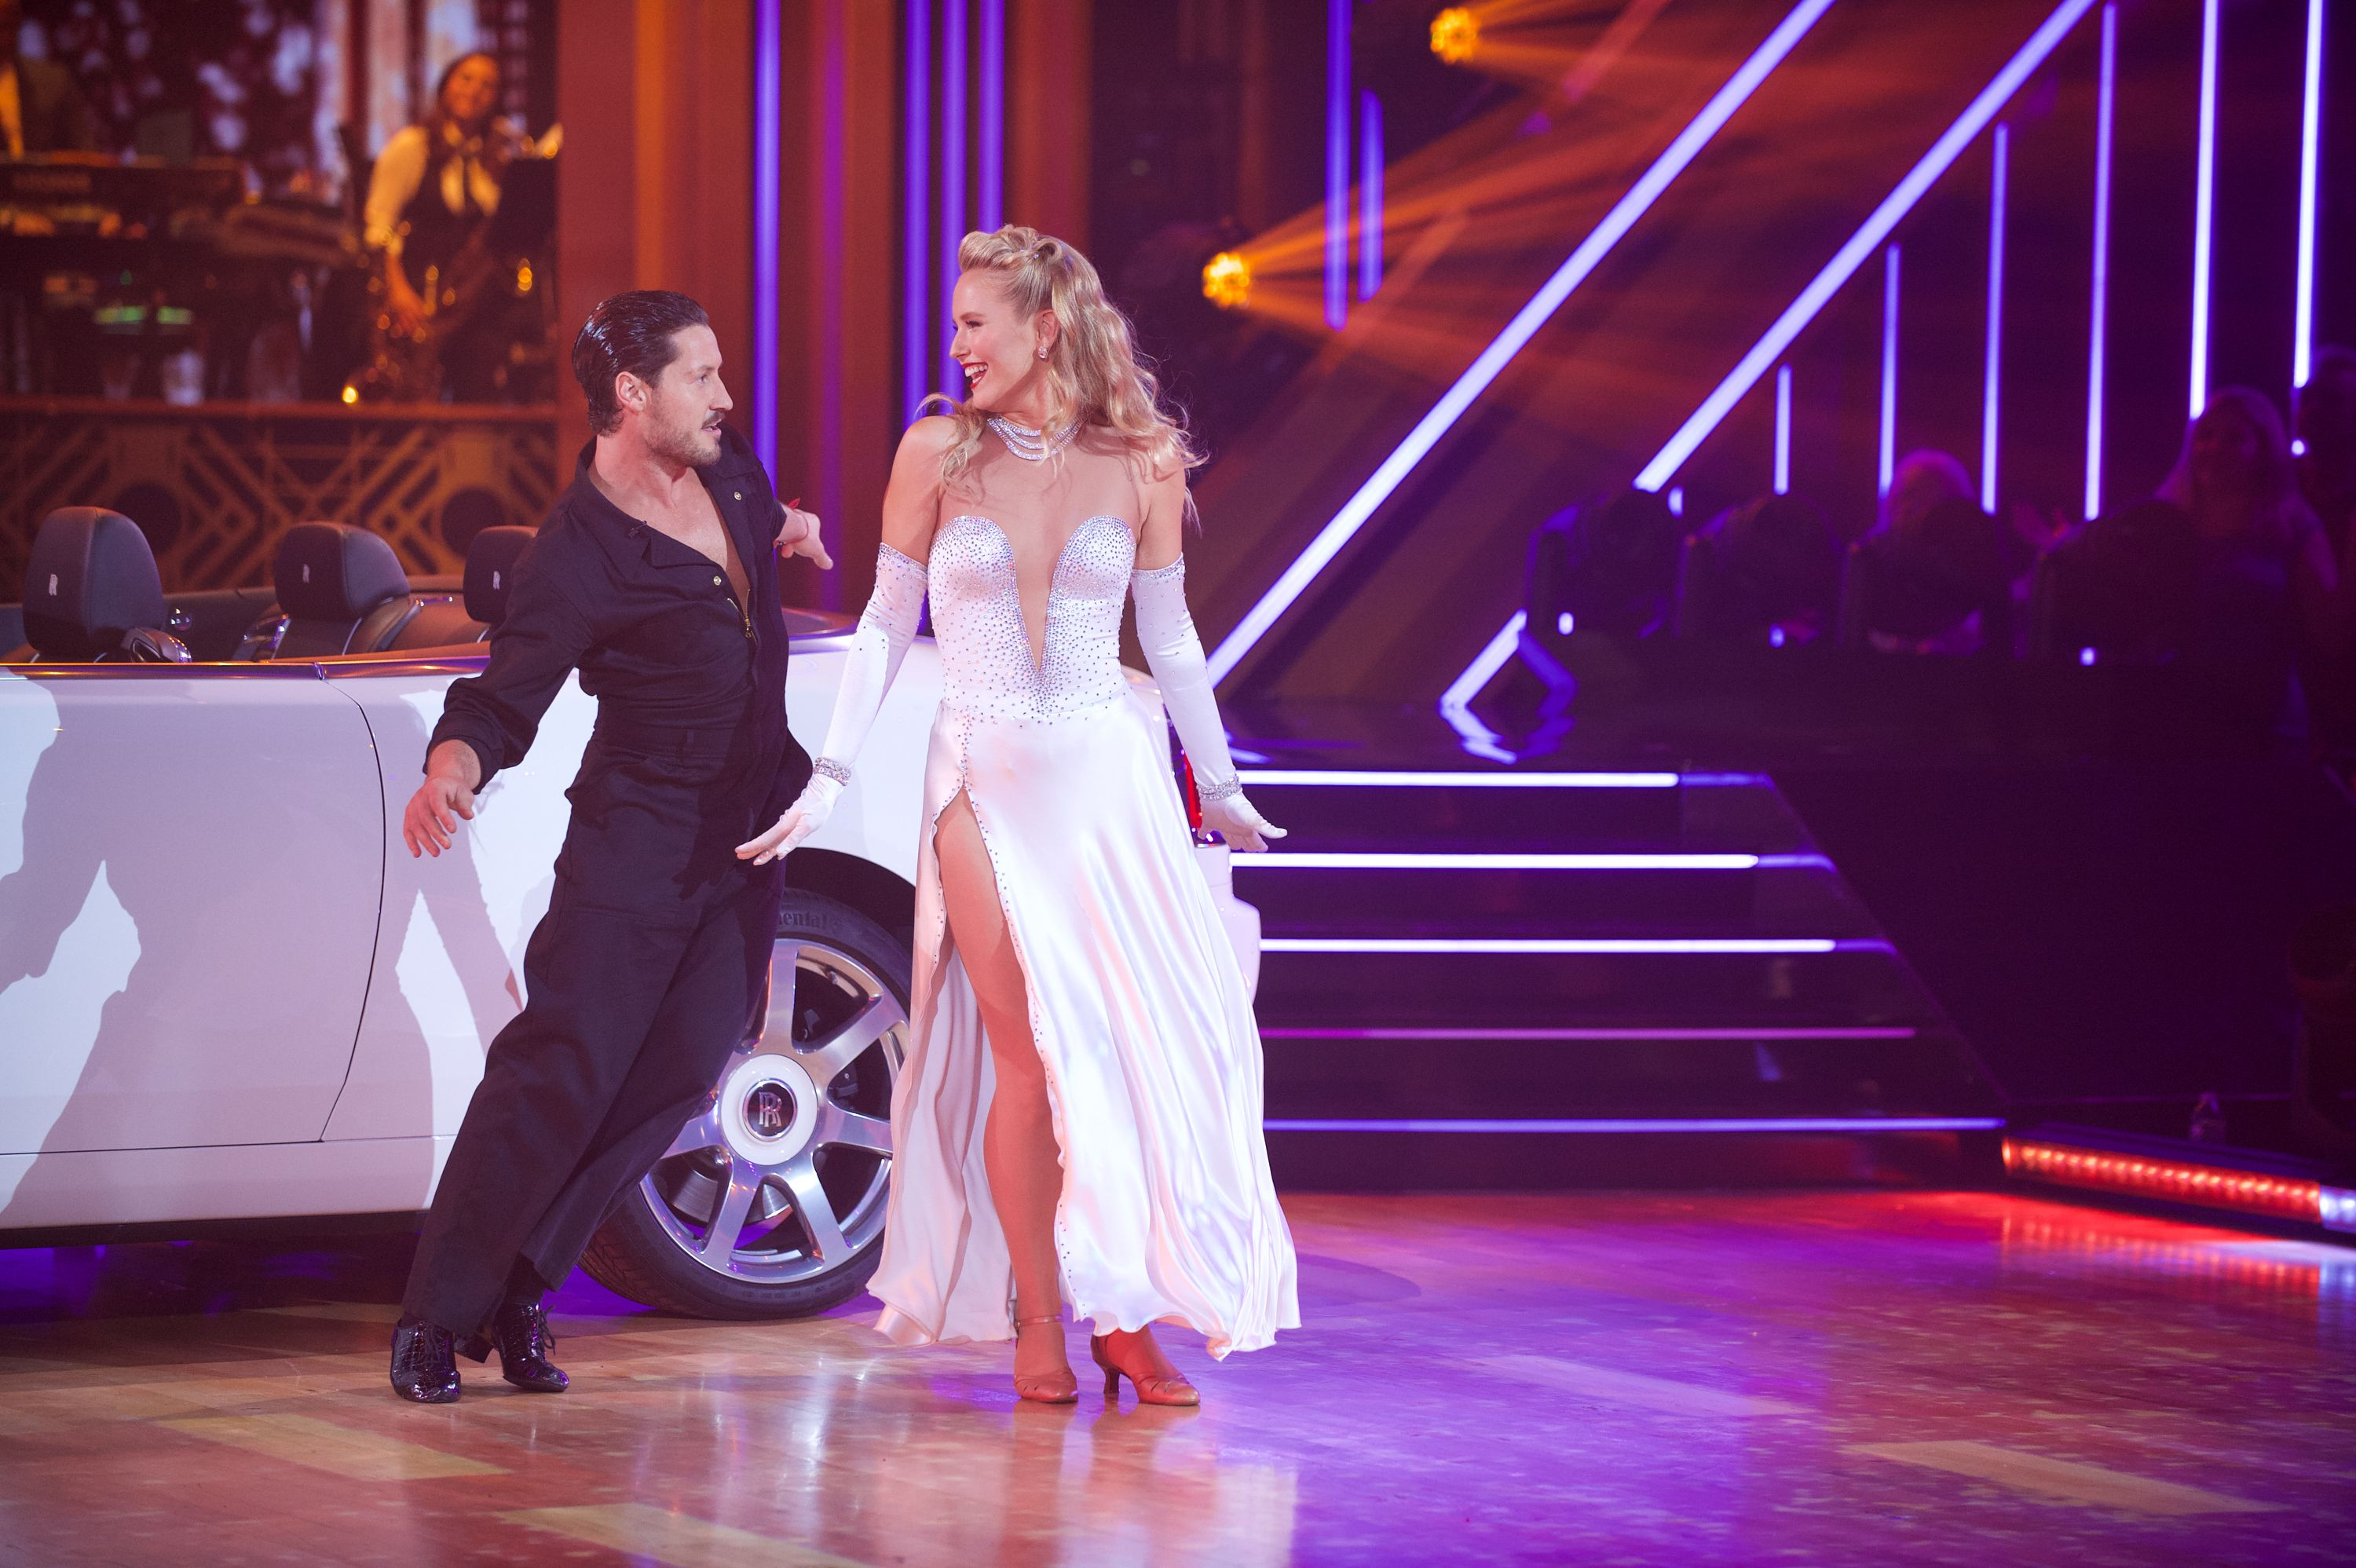 Sailor Brinkley-Cook Got a Standing Ovation on 'Dancing With the Stars' After Replacing Her Mom at the Last Minute